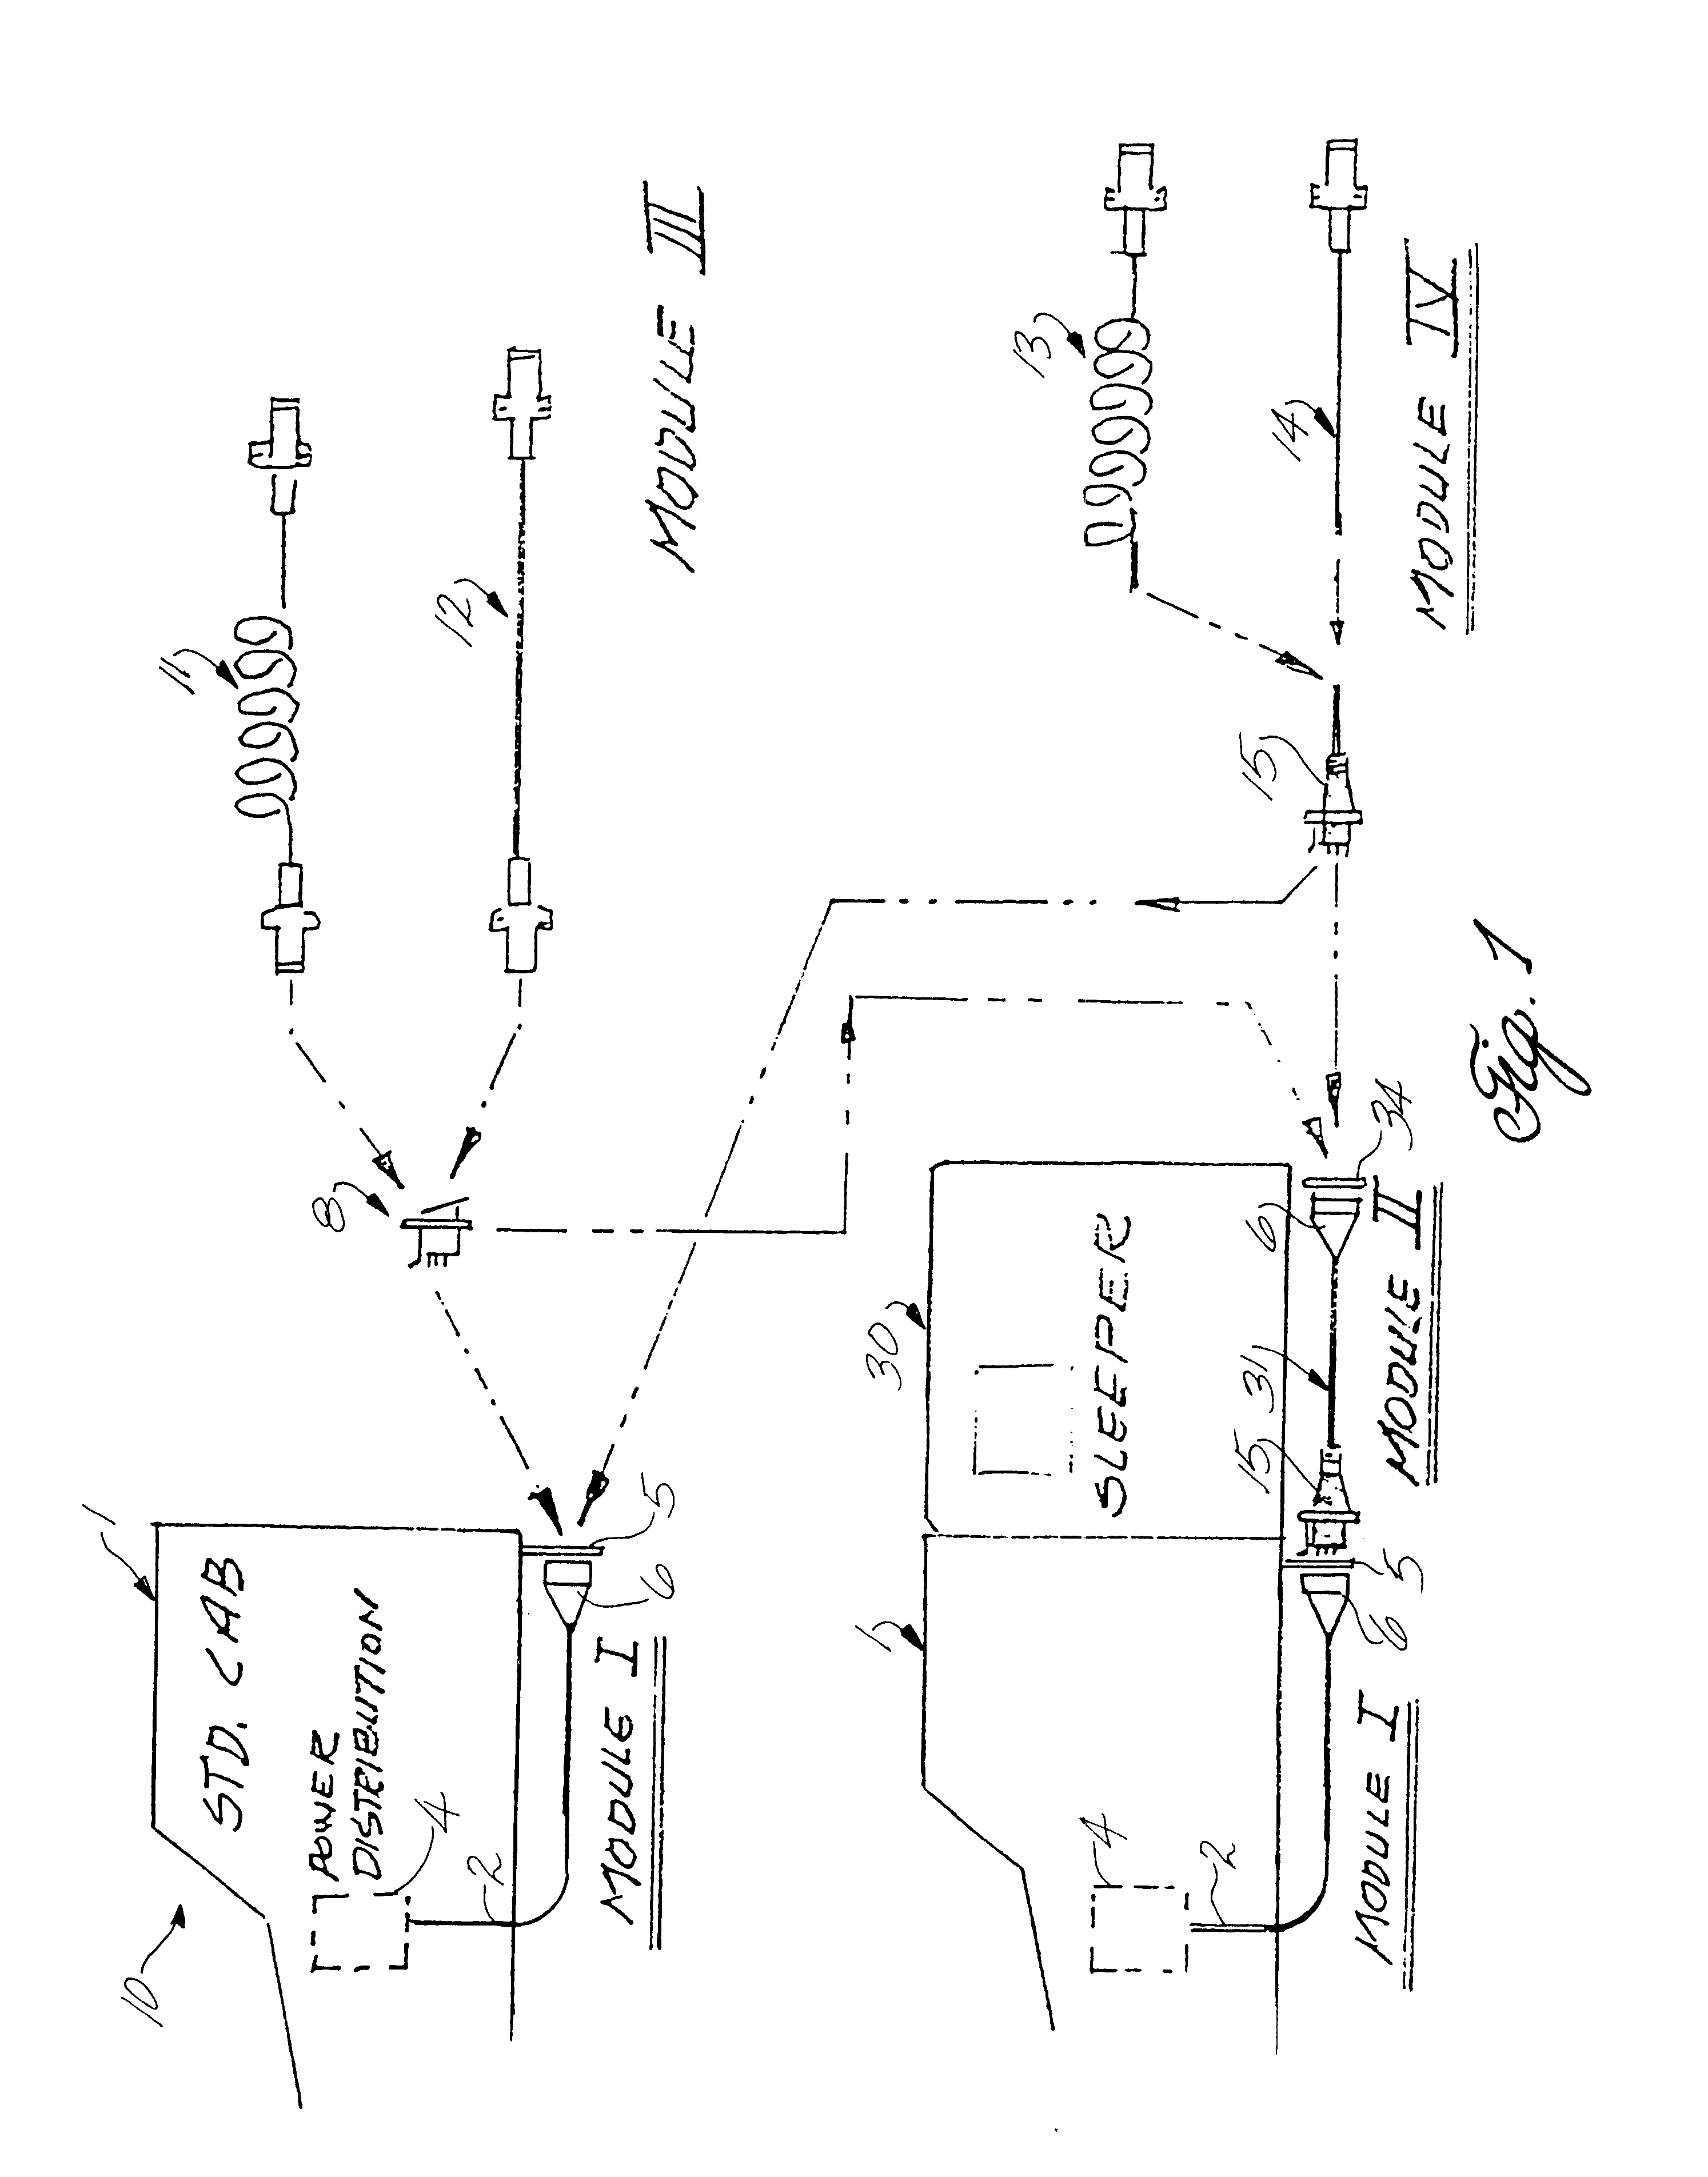 wiring diagram for 2008 g6 pdf with Phillips 16 7401 Wiring Diagram on Pontiac Sunfire Transmission Wiring Diagram furthermore Chevrolet Silverado Power Door Lock Wiring Diagram also Diagram Conditioner Room Wiring Air Haier Esa415n L together with International Fuse Box Diagram 2001 together with Wiring Diagram X  Radio.